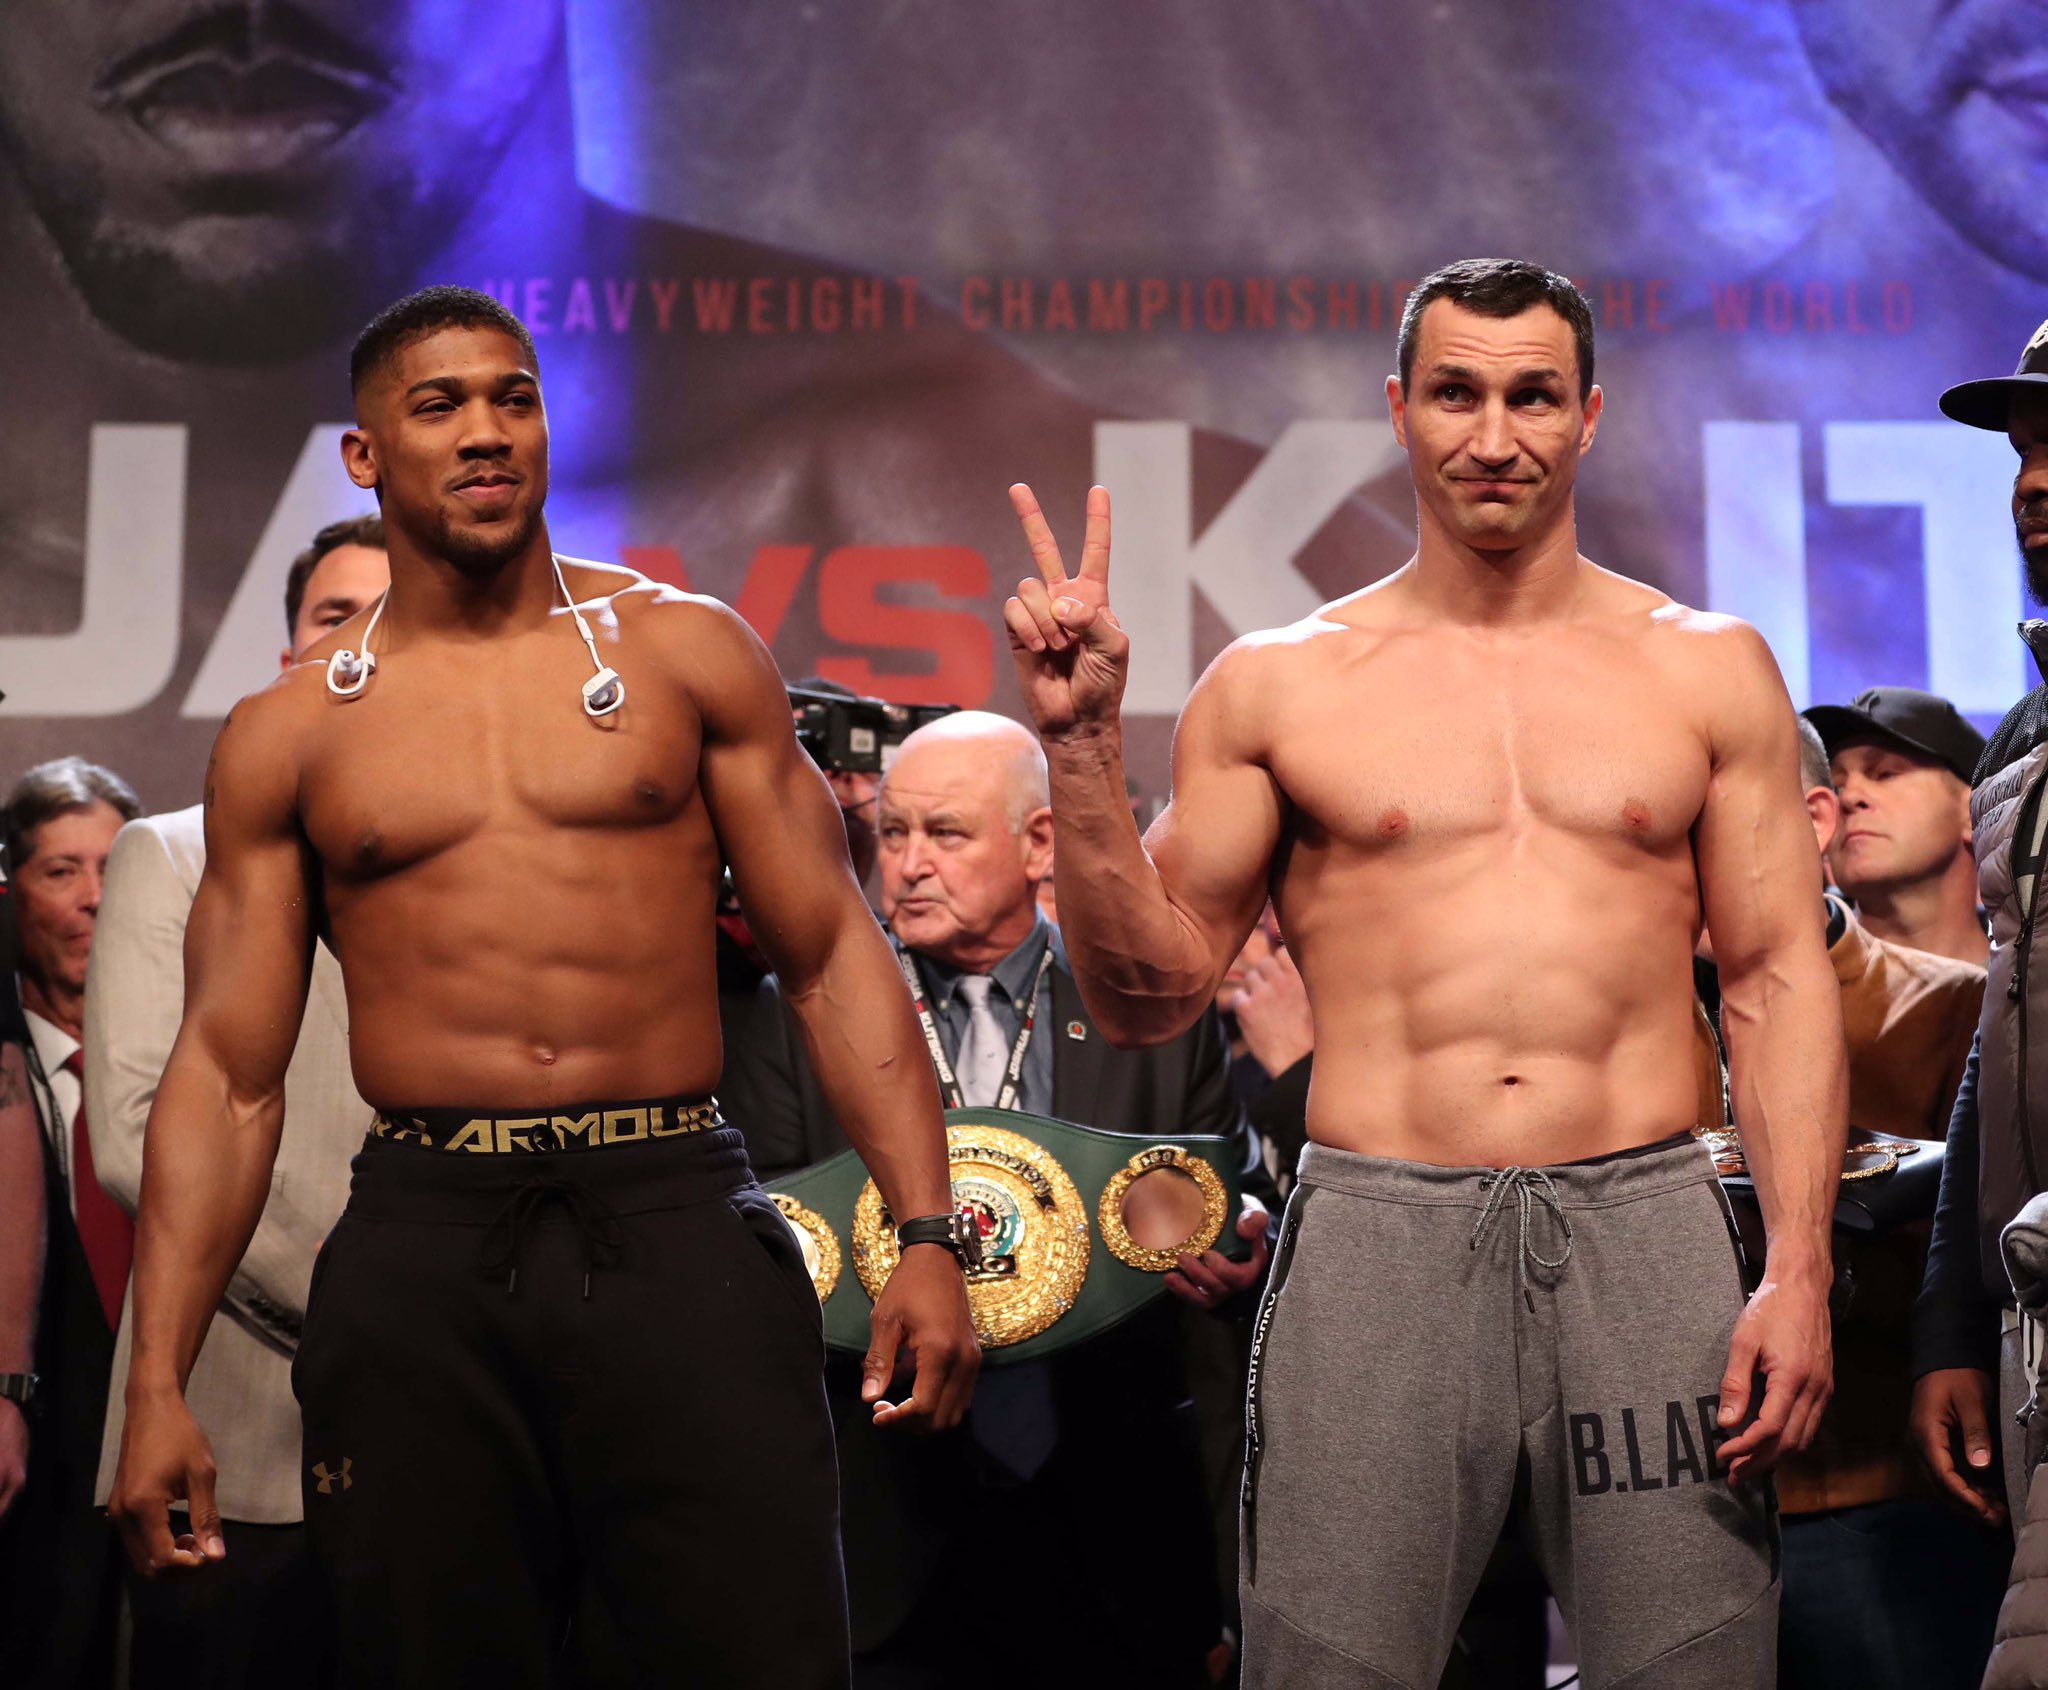 Moweta: Joshua Vs Klitschko Worth $40m, But Not A Big Fight In USA